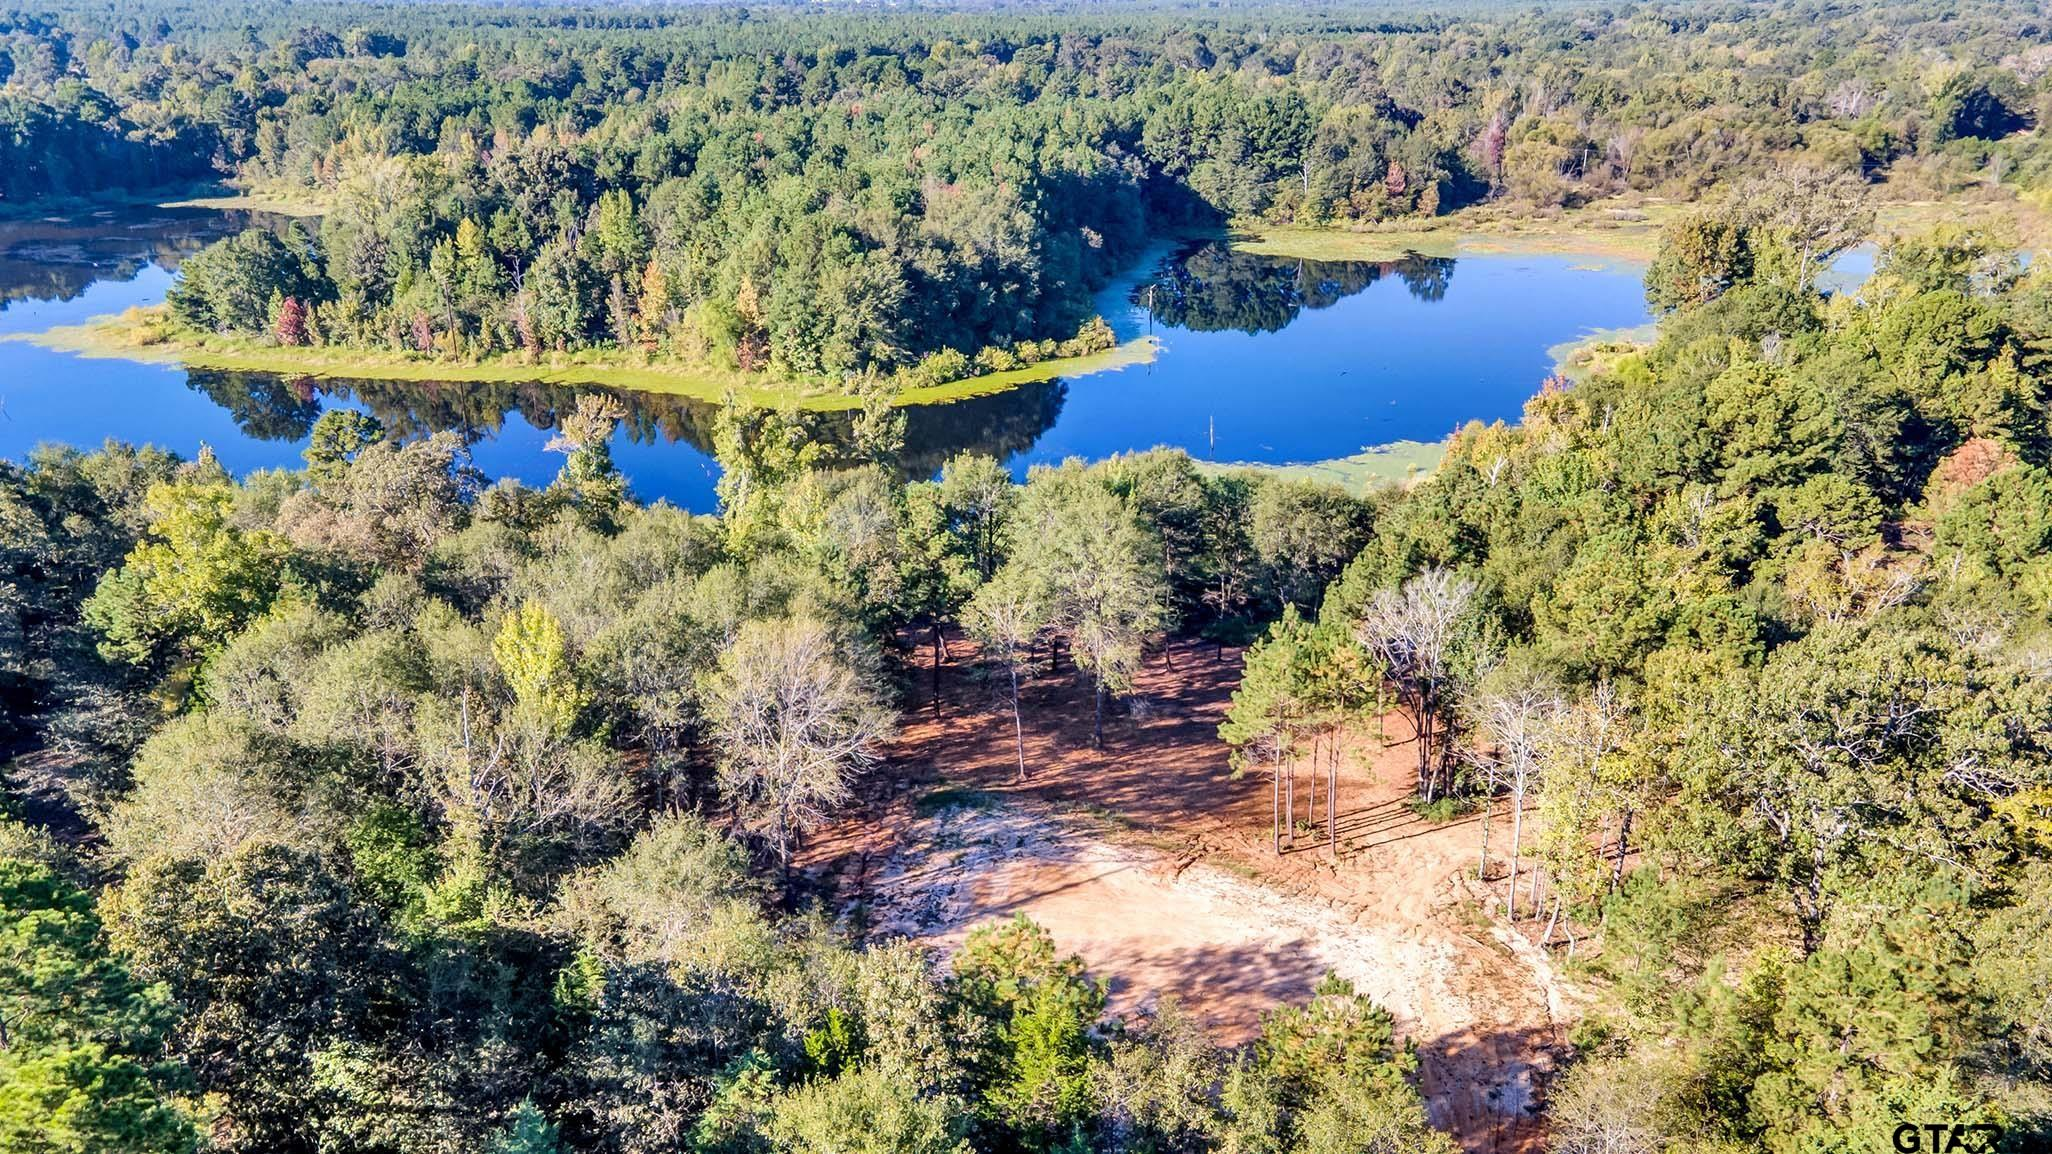 Beautiful setting....Approximately 41.5 wooded acres of TIMBER...w/ access to a shared PRIVATE LAKE. This lake is over 20 feet in depth and measures approximately 29 acres. Apx 215 yards of water frontage! Owner has already established road into the property, house pad, & an amazing view of the lake!!! Imagine the possibilities with this piece of paradise!  What an amazing opportunity to purchase an income producing property that also has an array of wildlife & lake! A hunters paradise...deer, duck, hogs, squirrels, fishing, AND MORE!! Call today!